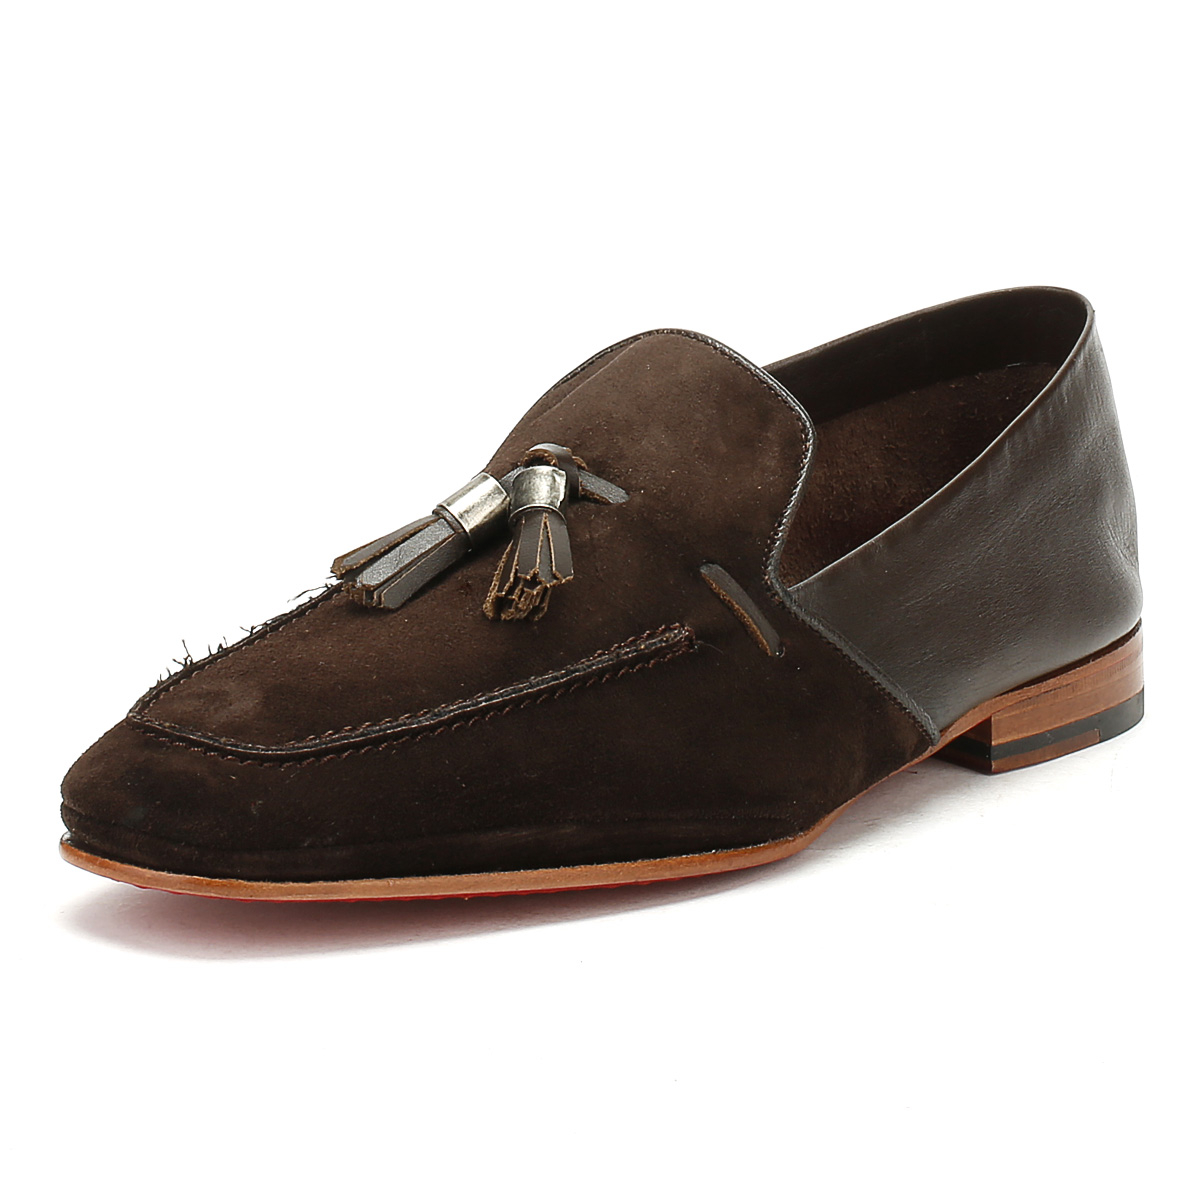 a475aed4d4c Details about Jeffery West Mens Mule Loafers Croste Bovino Dark Brown  Martini Moccasins Shoes